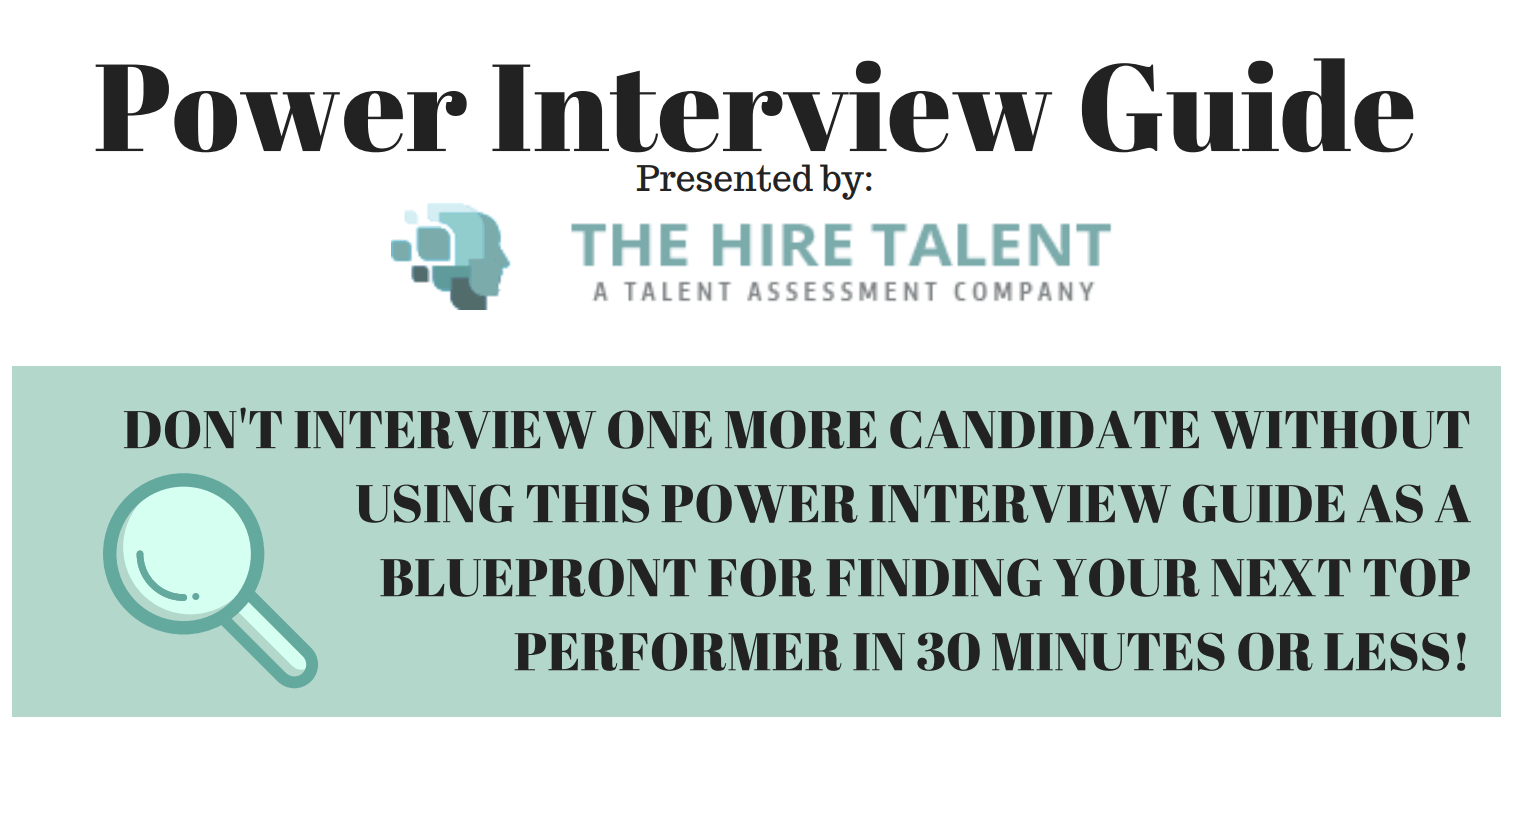 Power Interview Guide